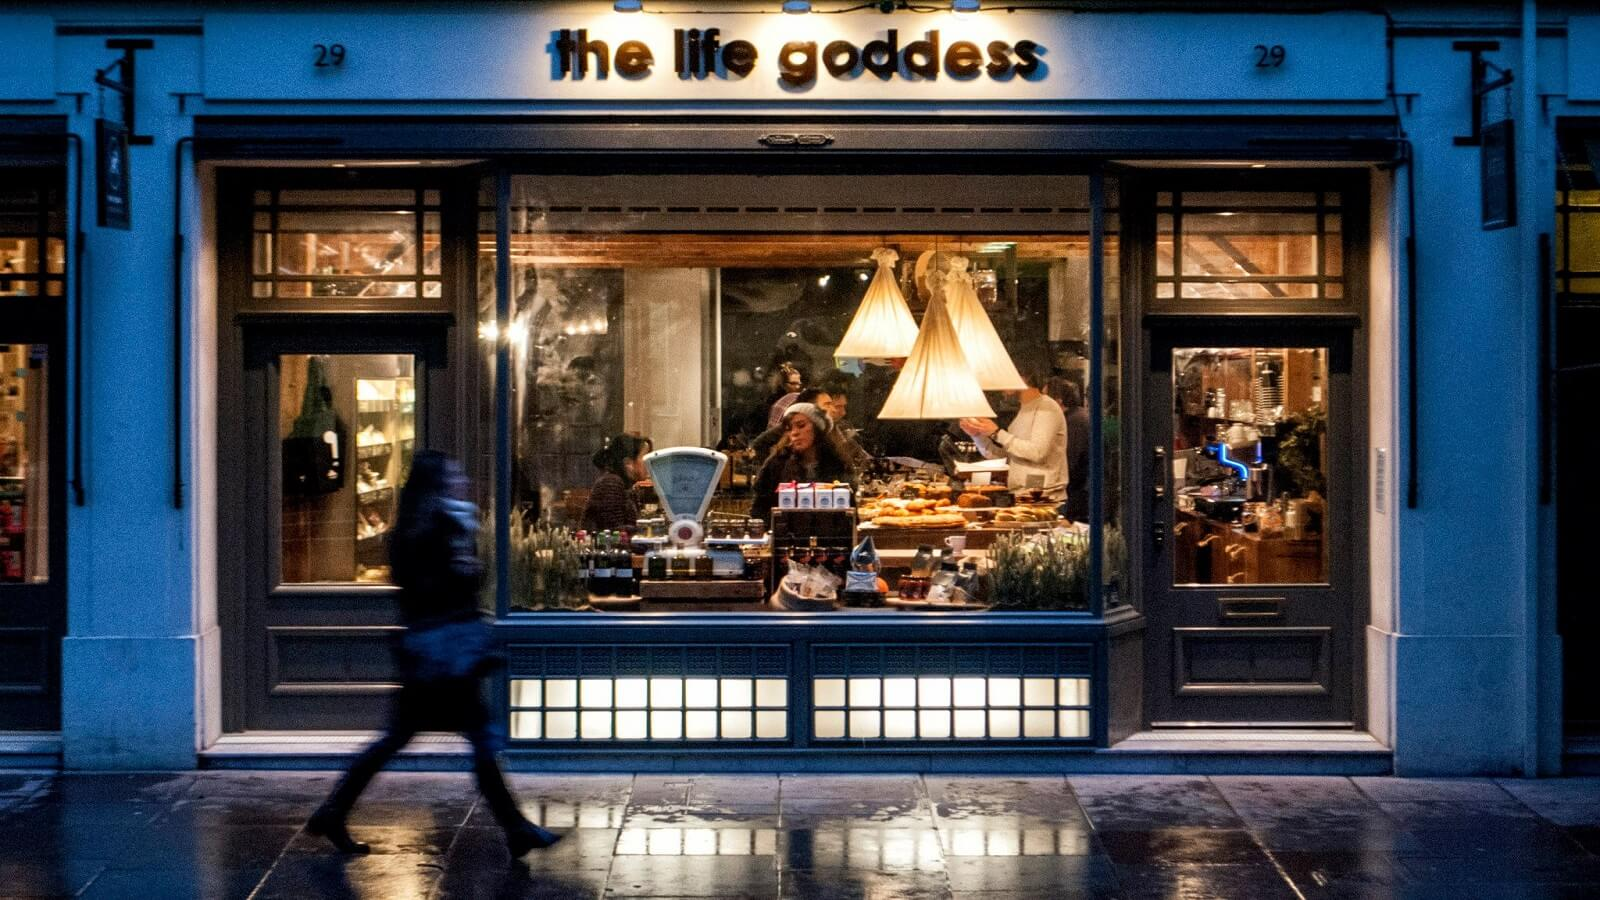 The Life Goddess Deli Divine